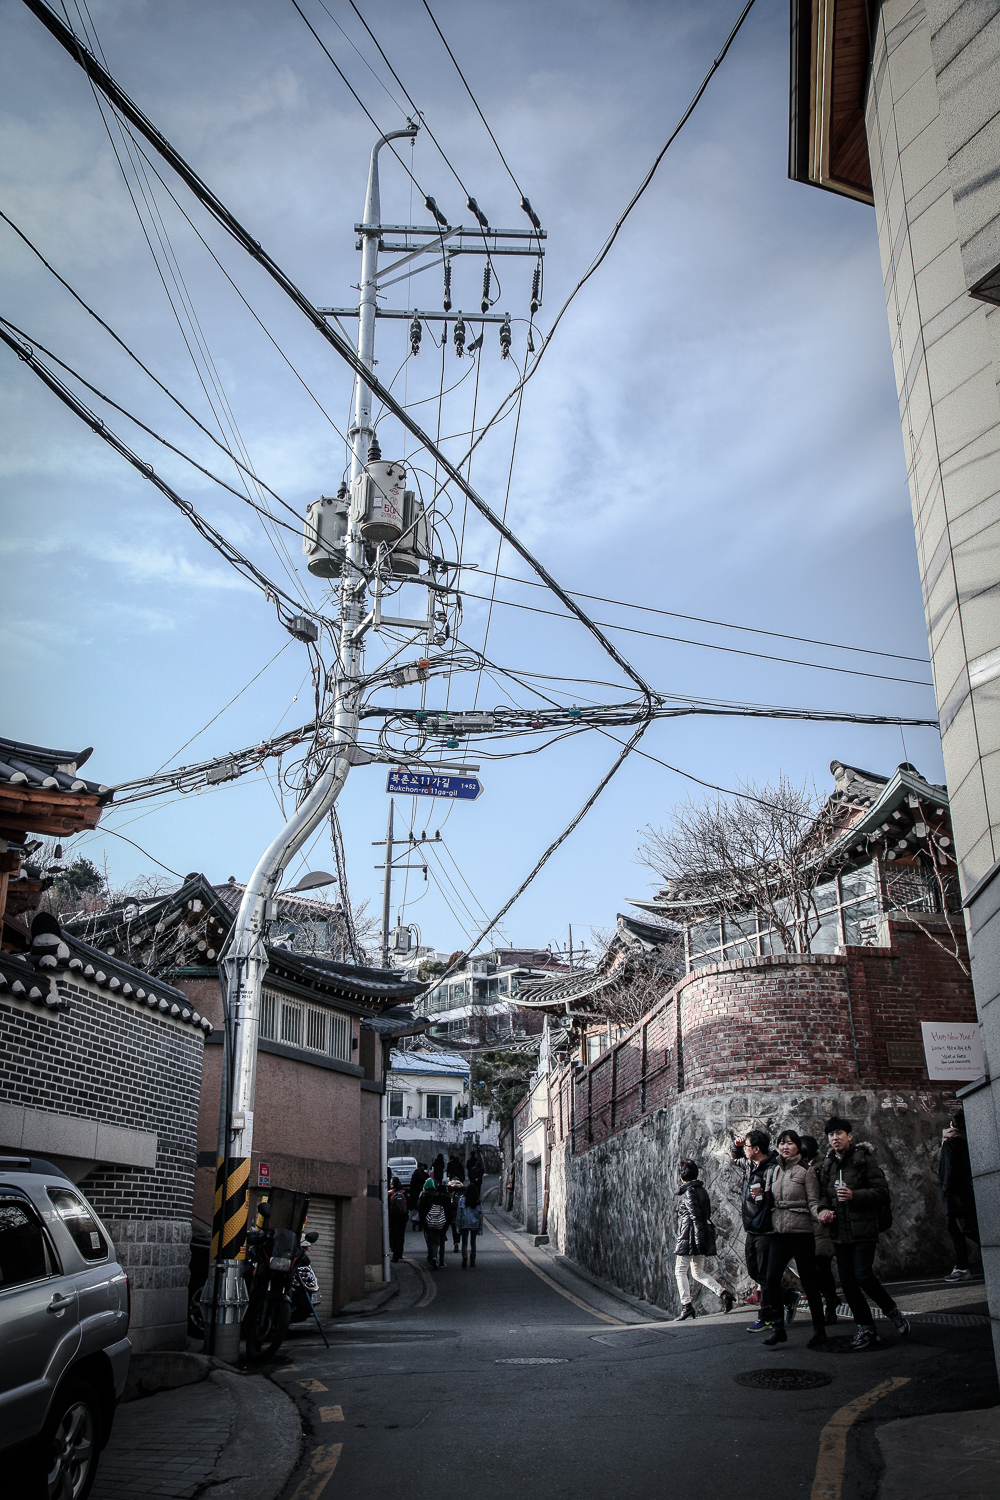 The electricity pole caught red-handed shaking its hip. It's not the first time to see many wires come together in the streets of Seoul.